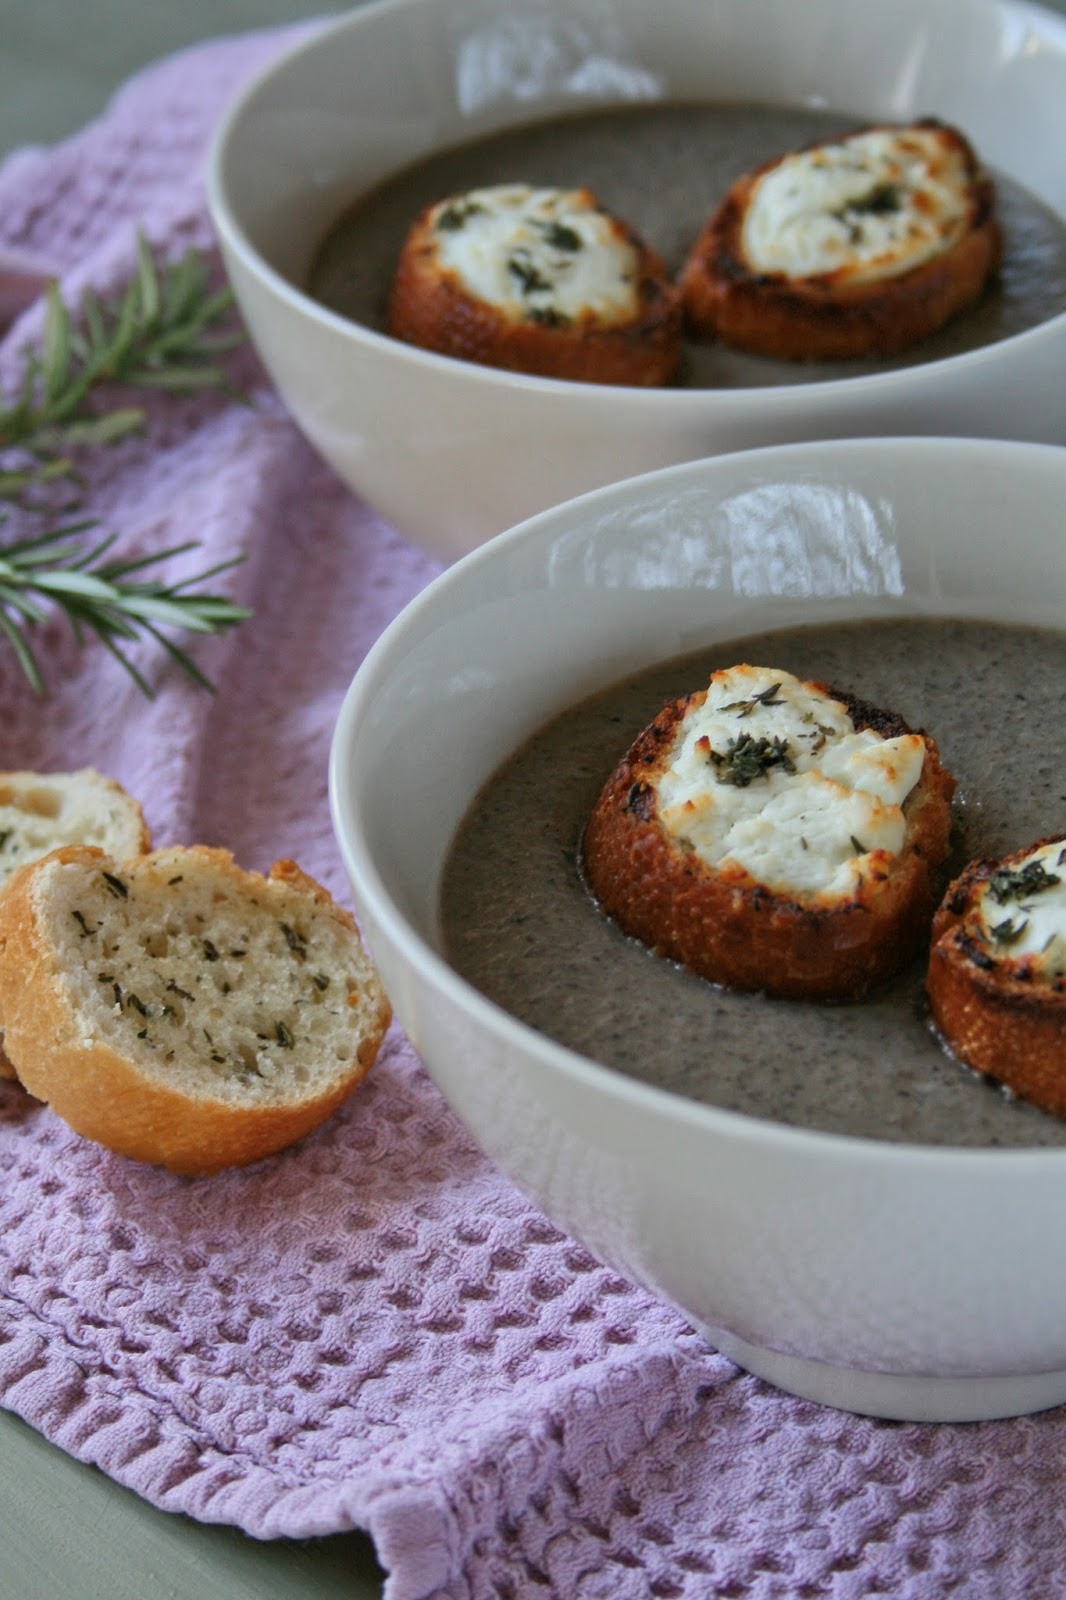 Creamy mushroom soup with toasted baguette.